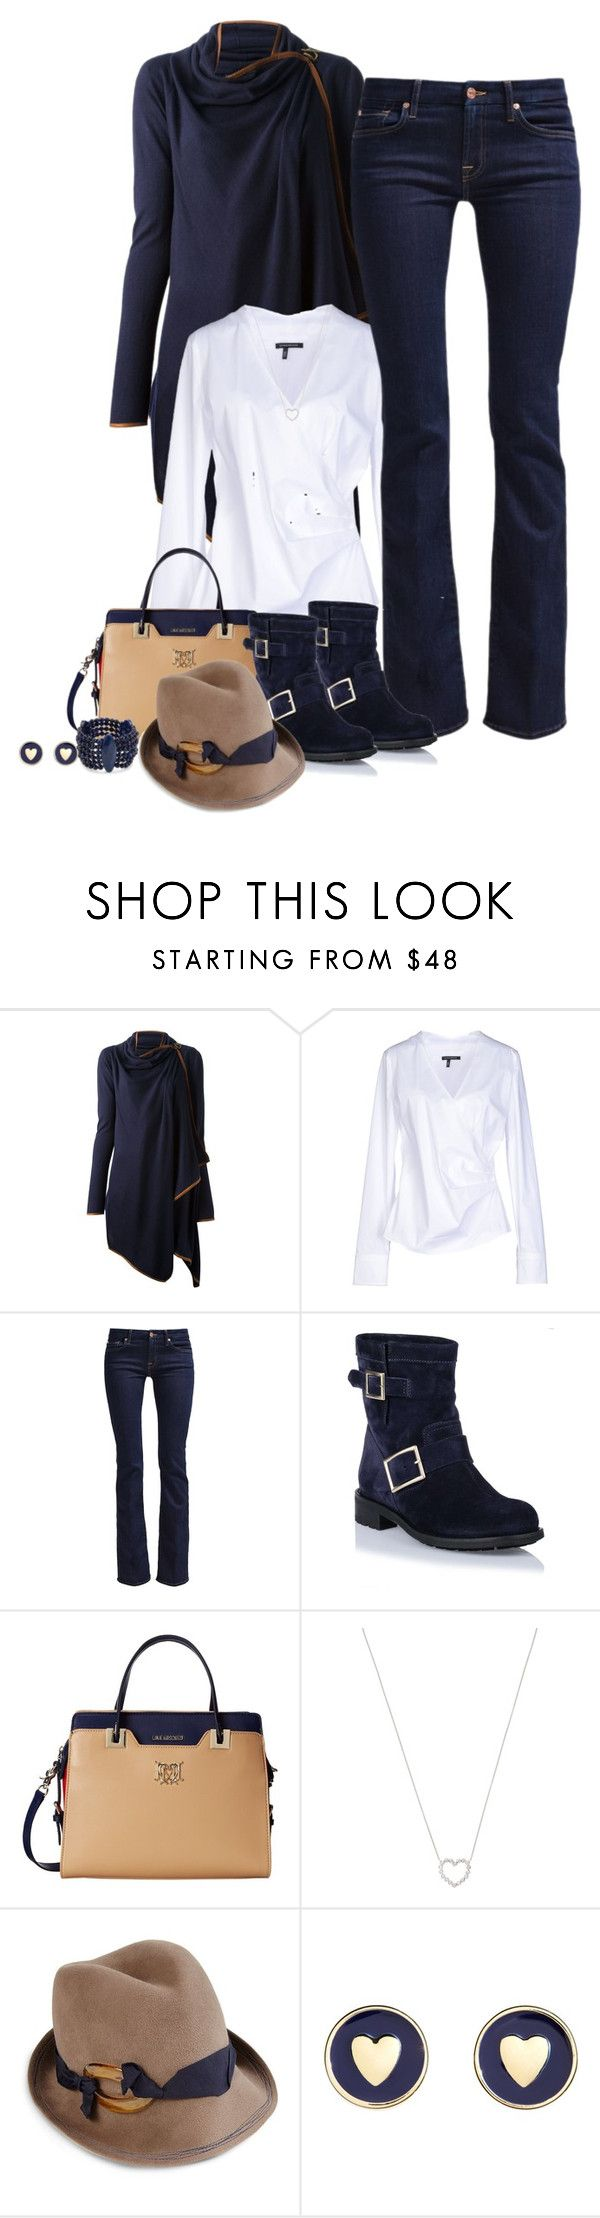 """""""Untitled #320"""" by jessy-james83 ❤ liked on Polyvore featuring Ralph Lauren Blue Label, Strenesse Gabriele Strehle, 7 For All Mankind, Jimmy Choo, Love Moschino, Tiffany & Co., Lola and Brooks Brothers"""